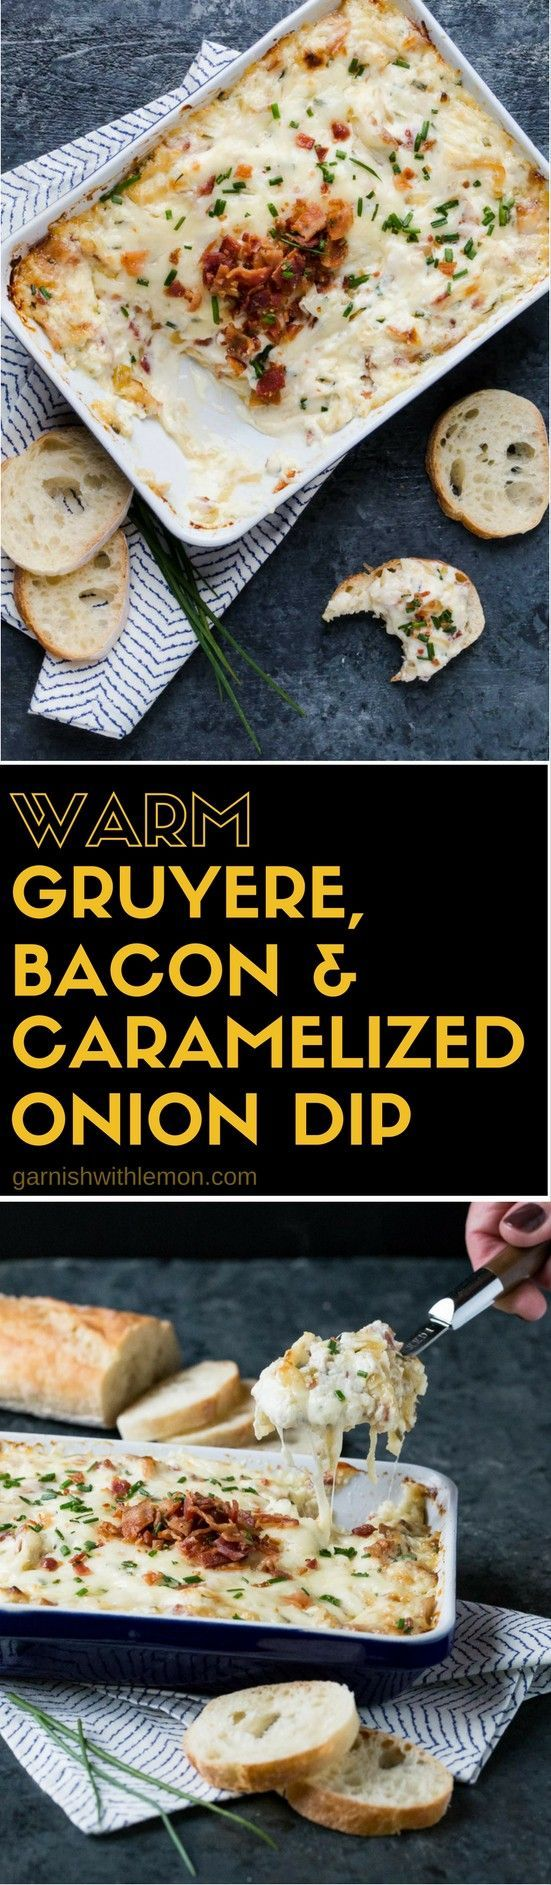 You can never go wrong with a bacon and cheese. This Warm Gruyere, Bacon and Caramelized Onion Dip is always a favorite! #dips #partyfood #easyentertaining #appetizers